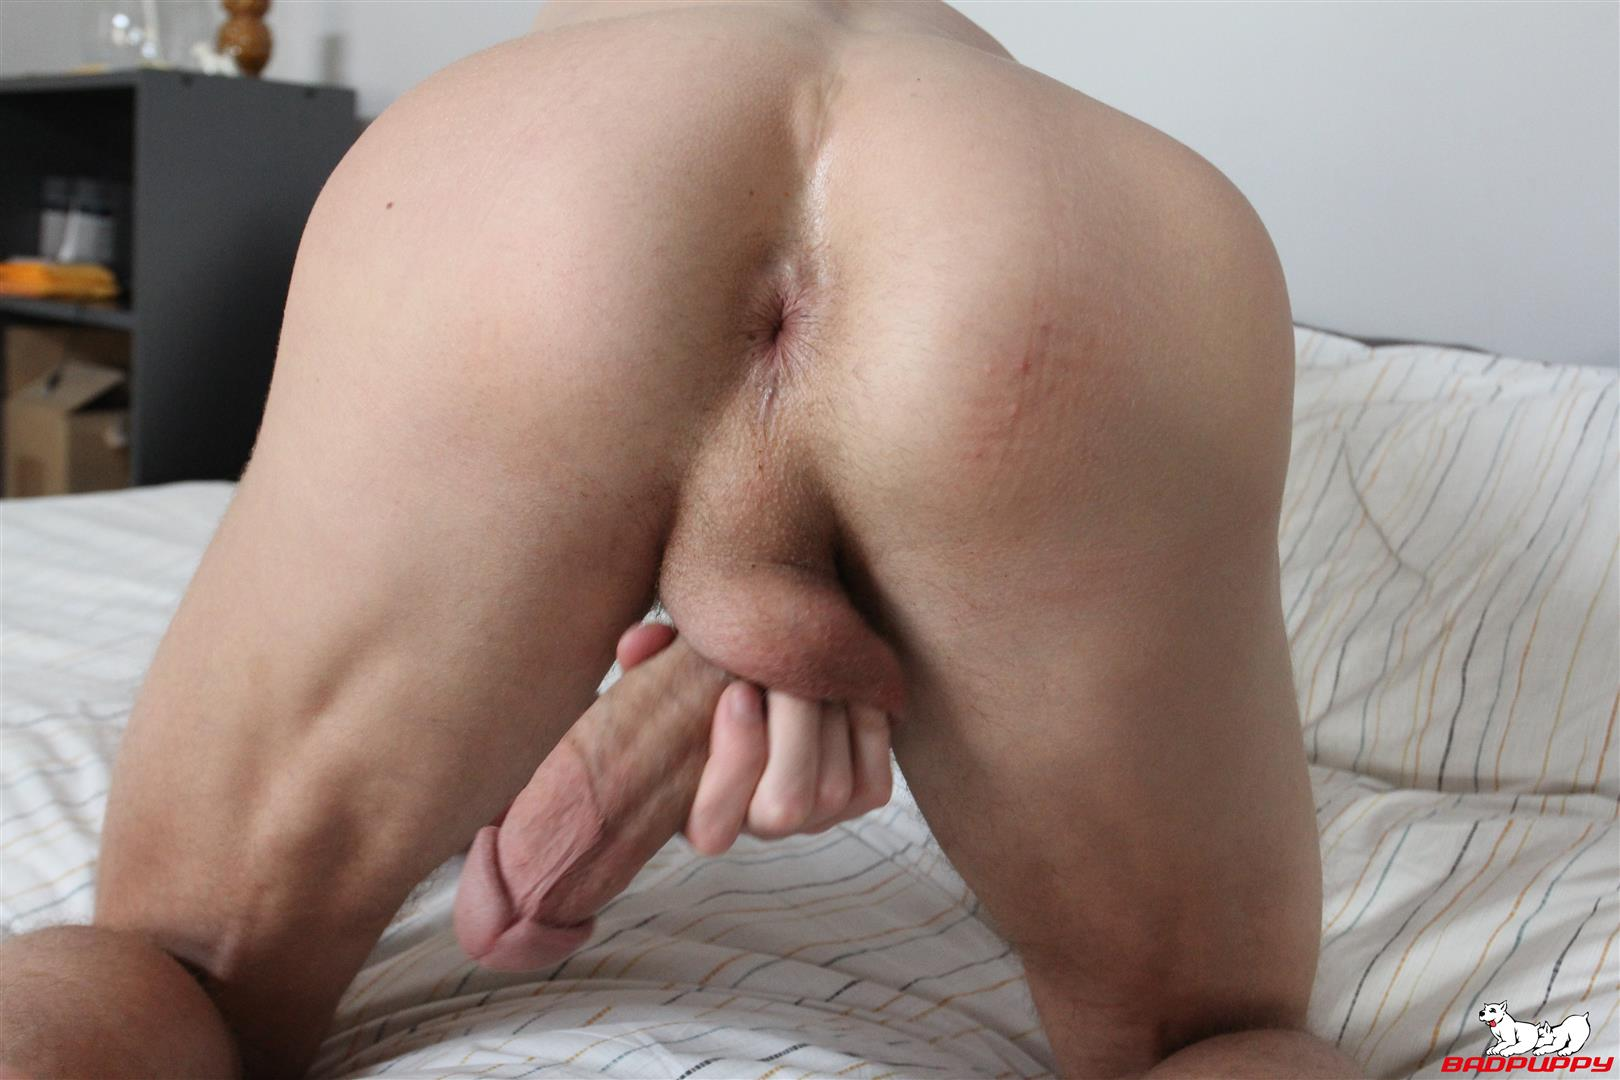 Badpuppy-Cameron-Taylor-Big-Dick-Twink-Jerking-Off-Video-11 Big Dick Twink Cameron Taylor Showing Off And Jerking Off